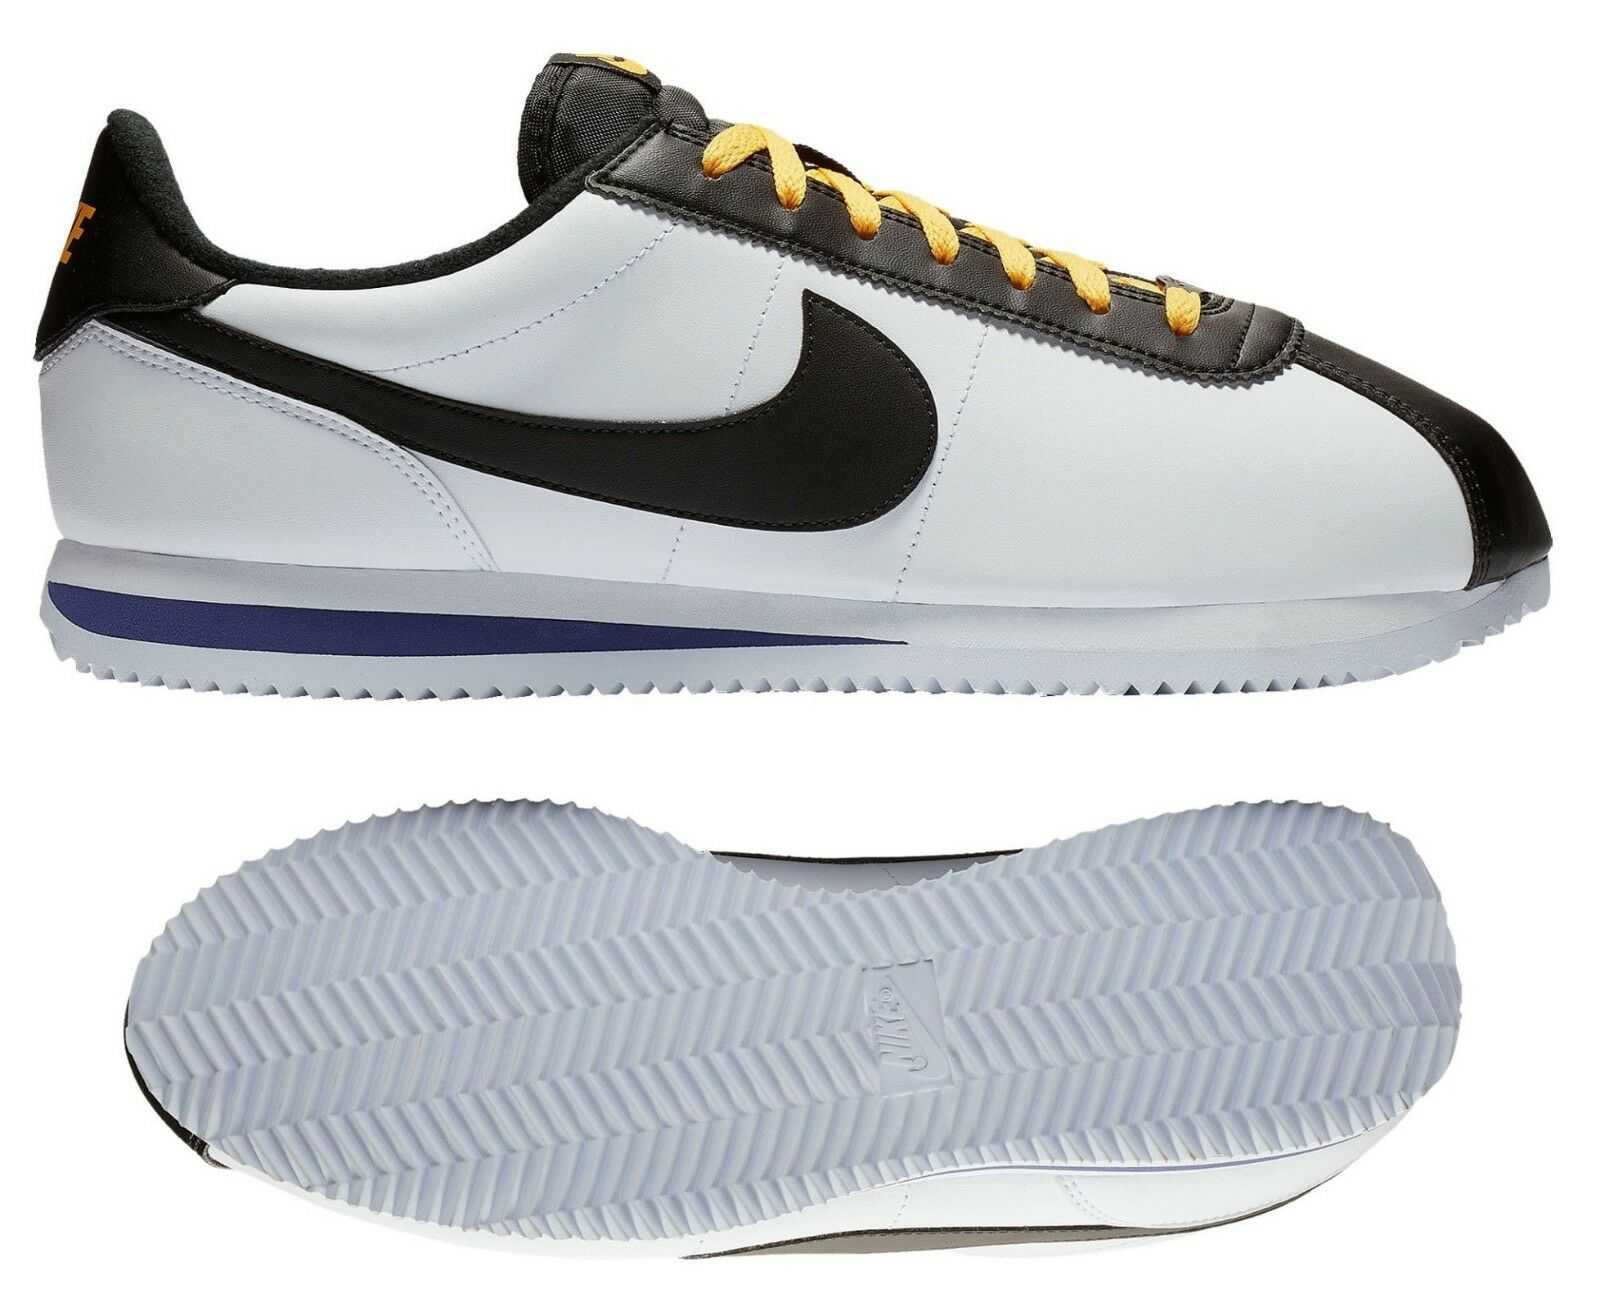 New NIKE Cortez Leather Retro Classic Casual shoes Mens white all sizes